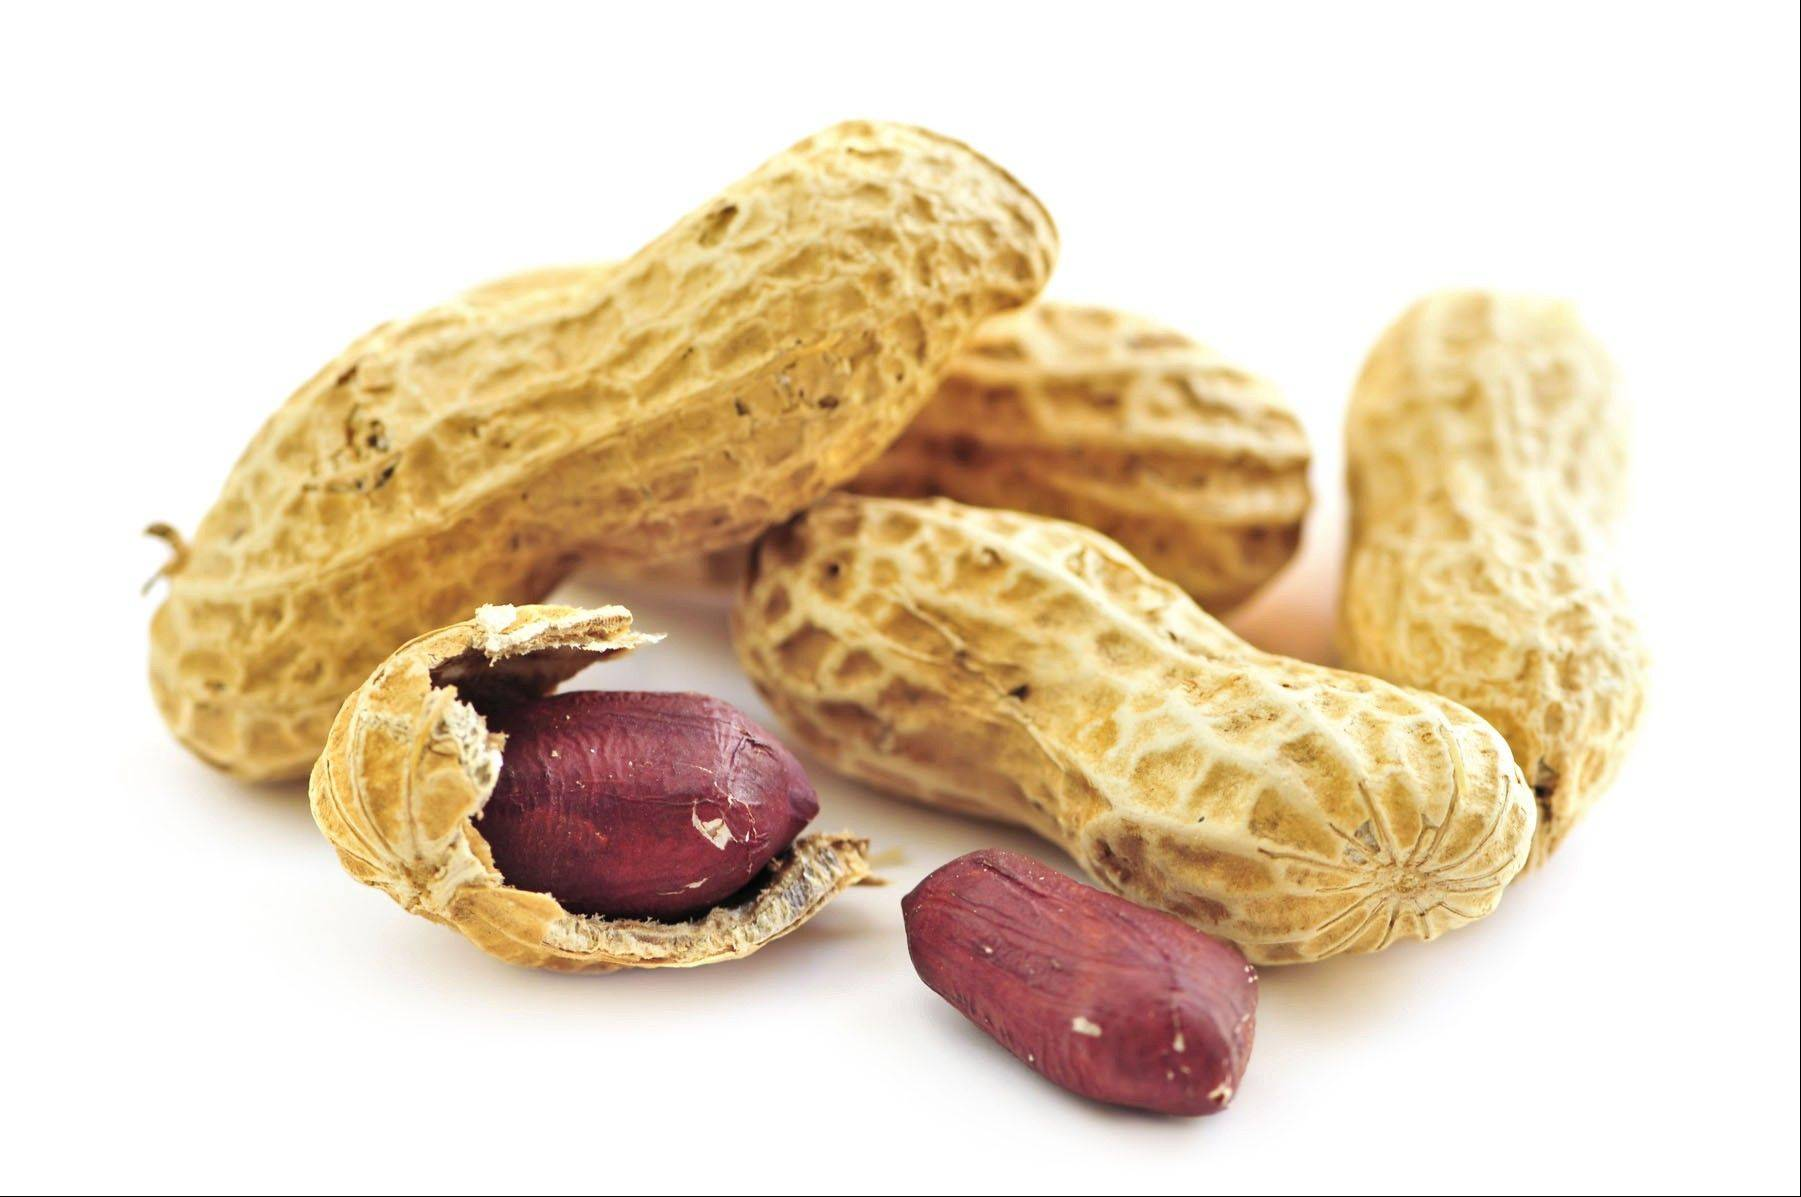 Peanut allergies are on the rise and affect up to 2 percent of the population in the United States and other Western countries. Women were once advised to avoid nuts in pregnancy to avoid triggering allergies in their offspring, but that advice was later rescinded.